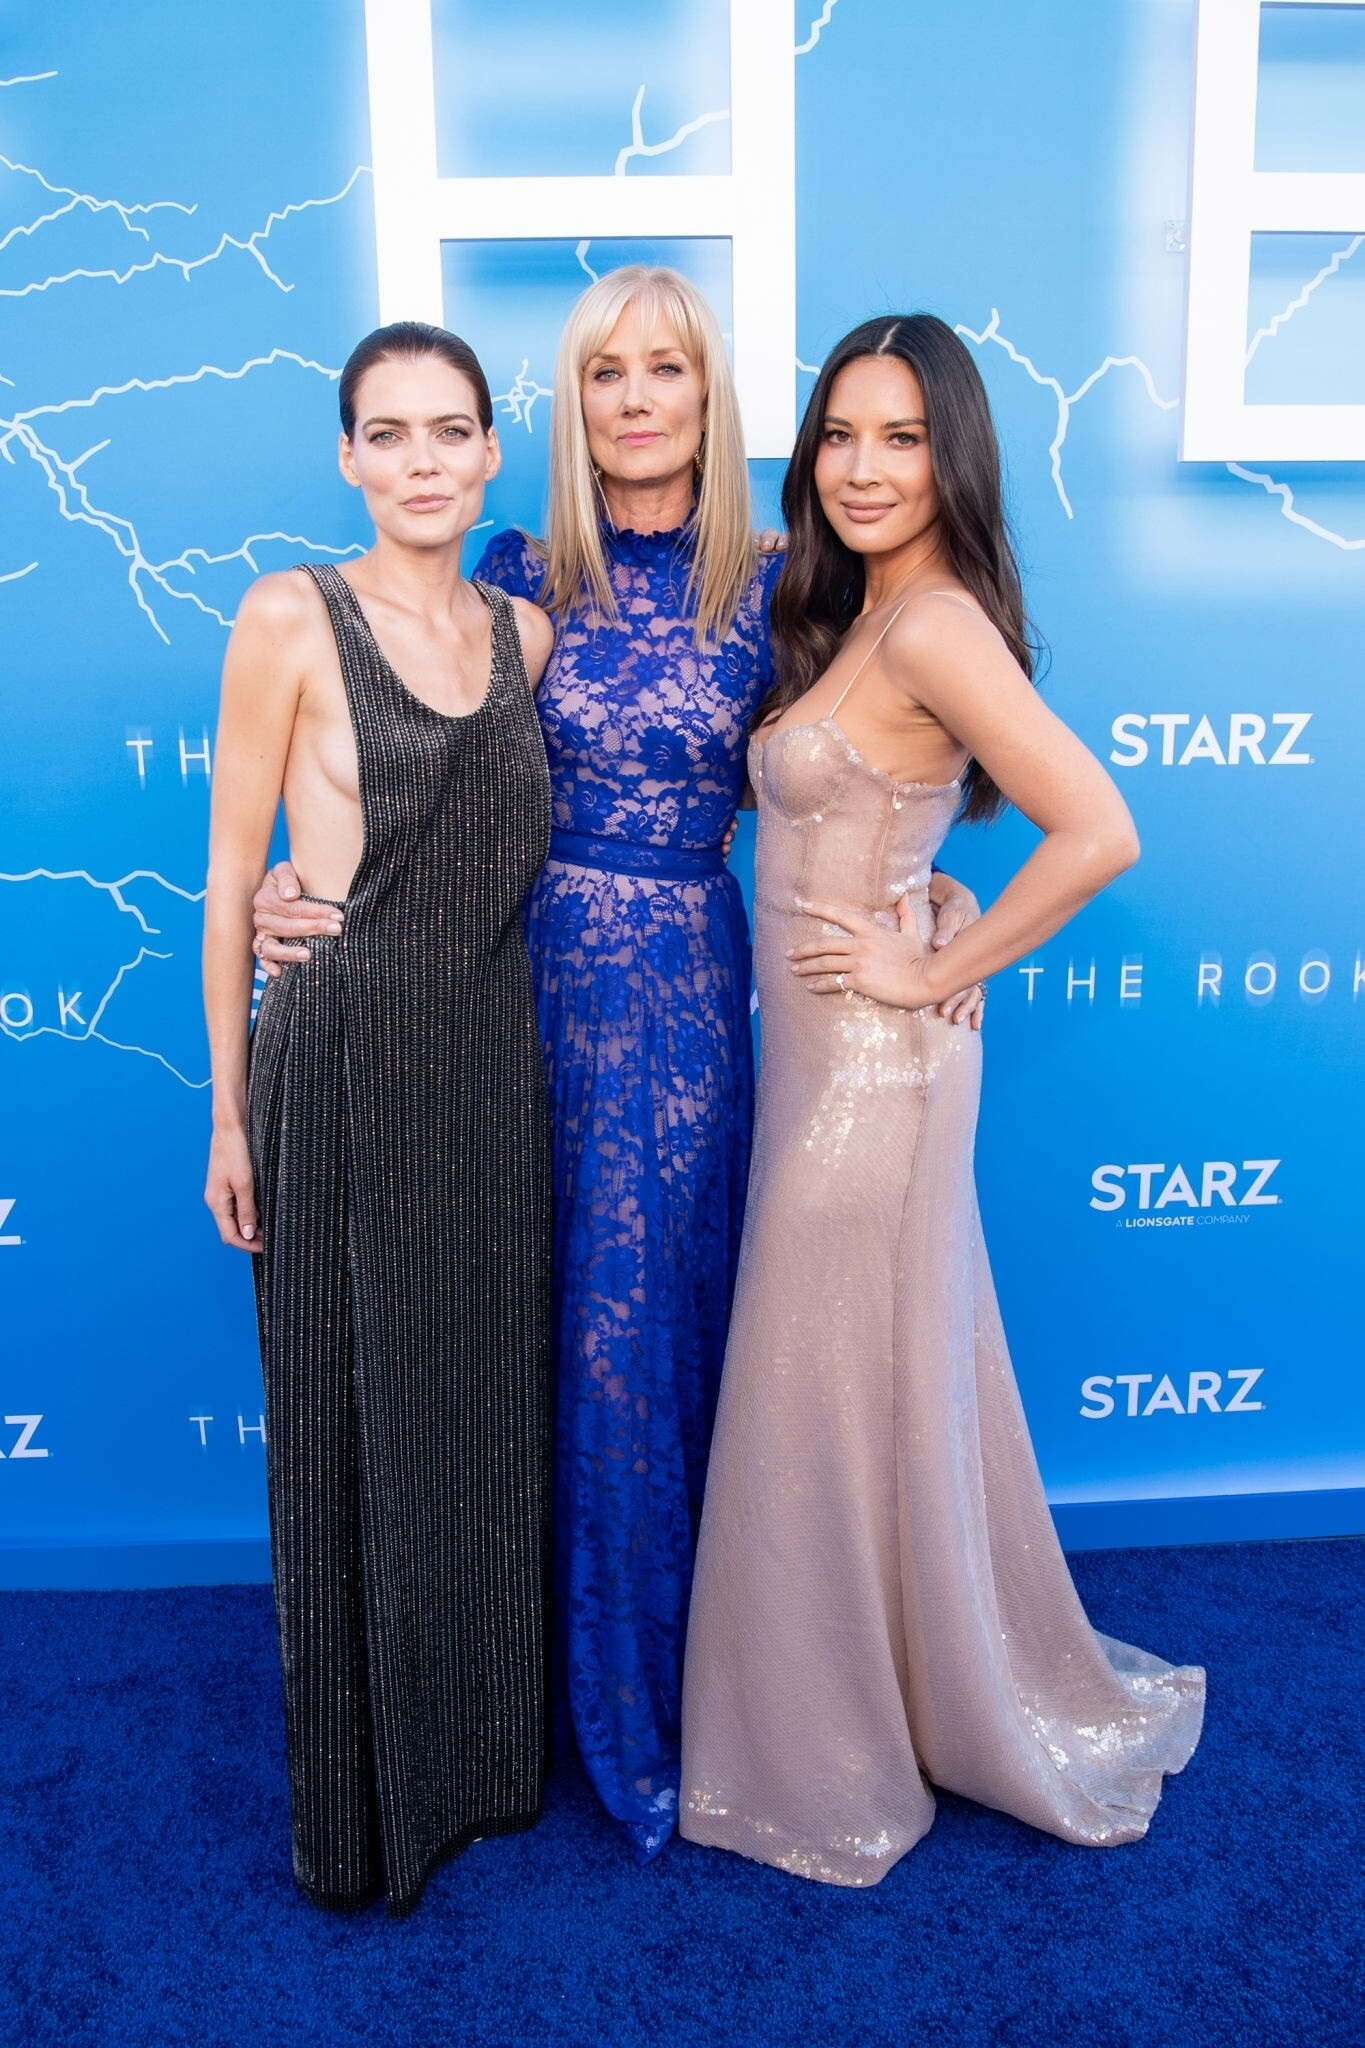 Olivia Munn At The Premiere Of THE ROOK In Los Angeles Set 2